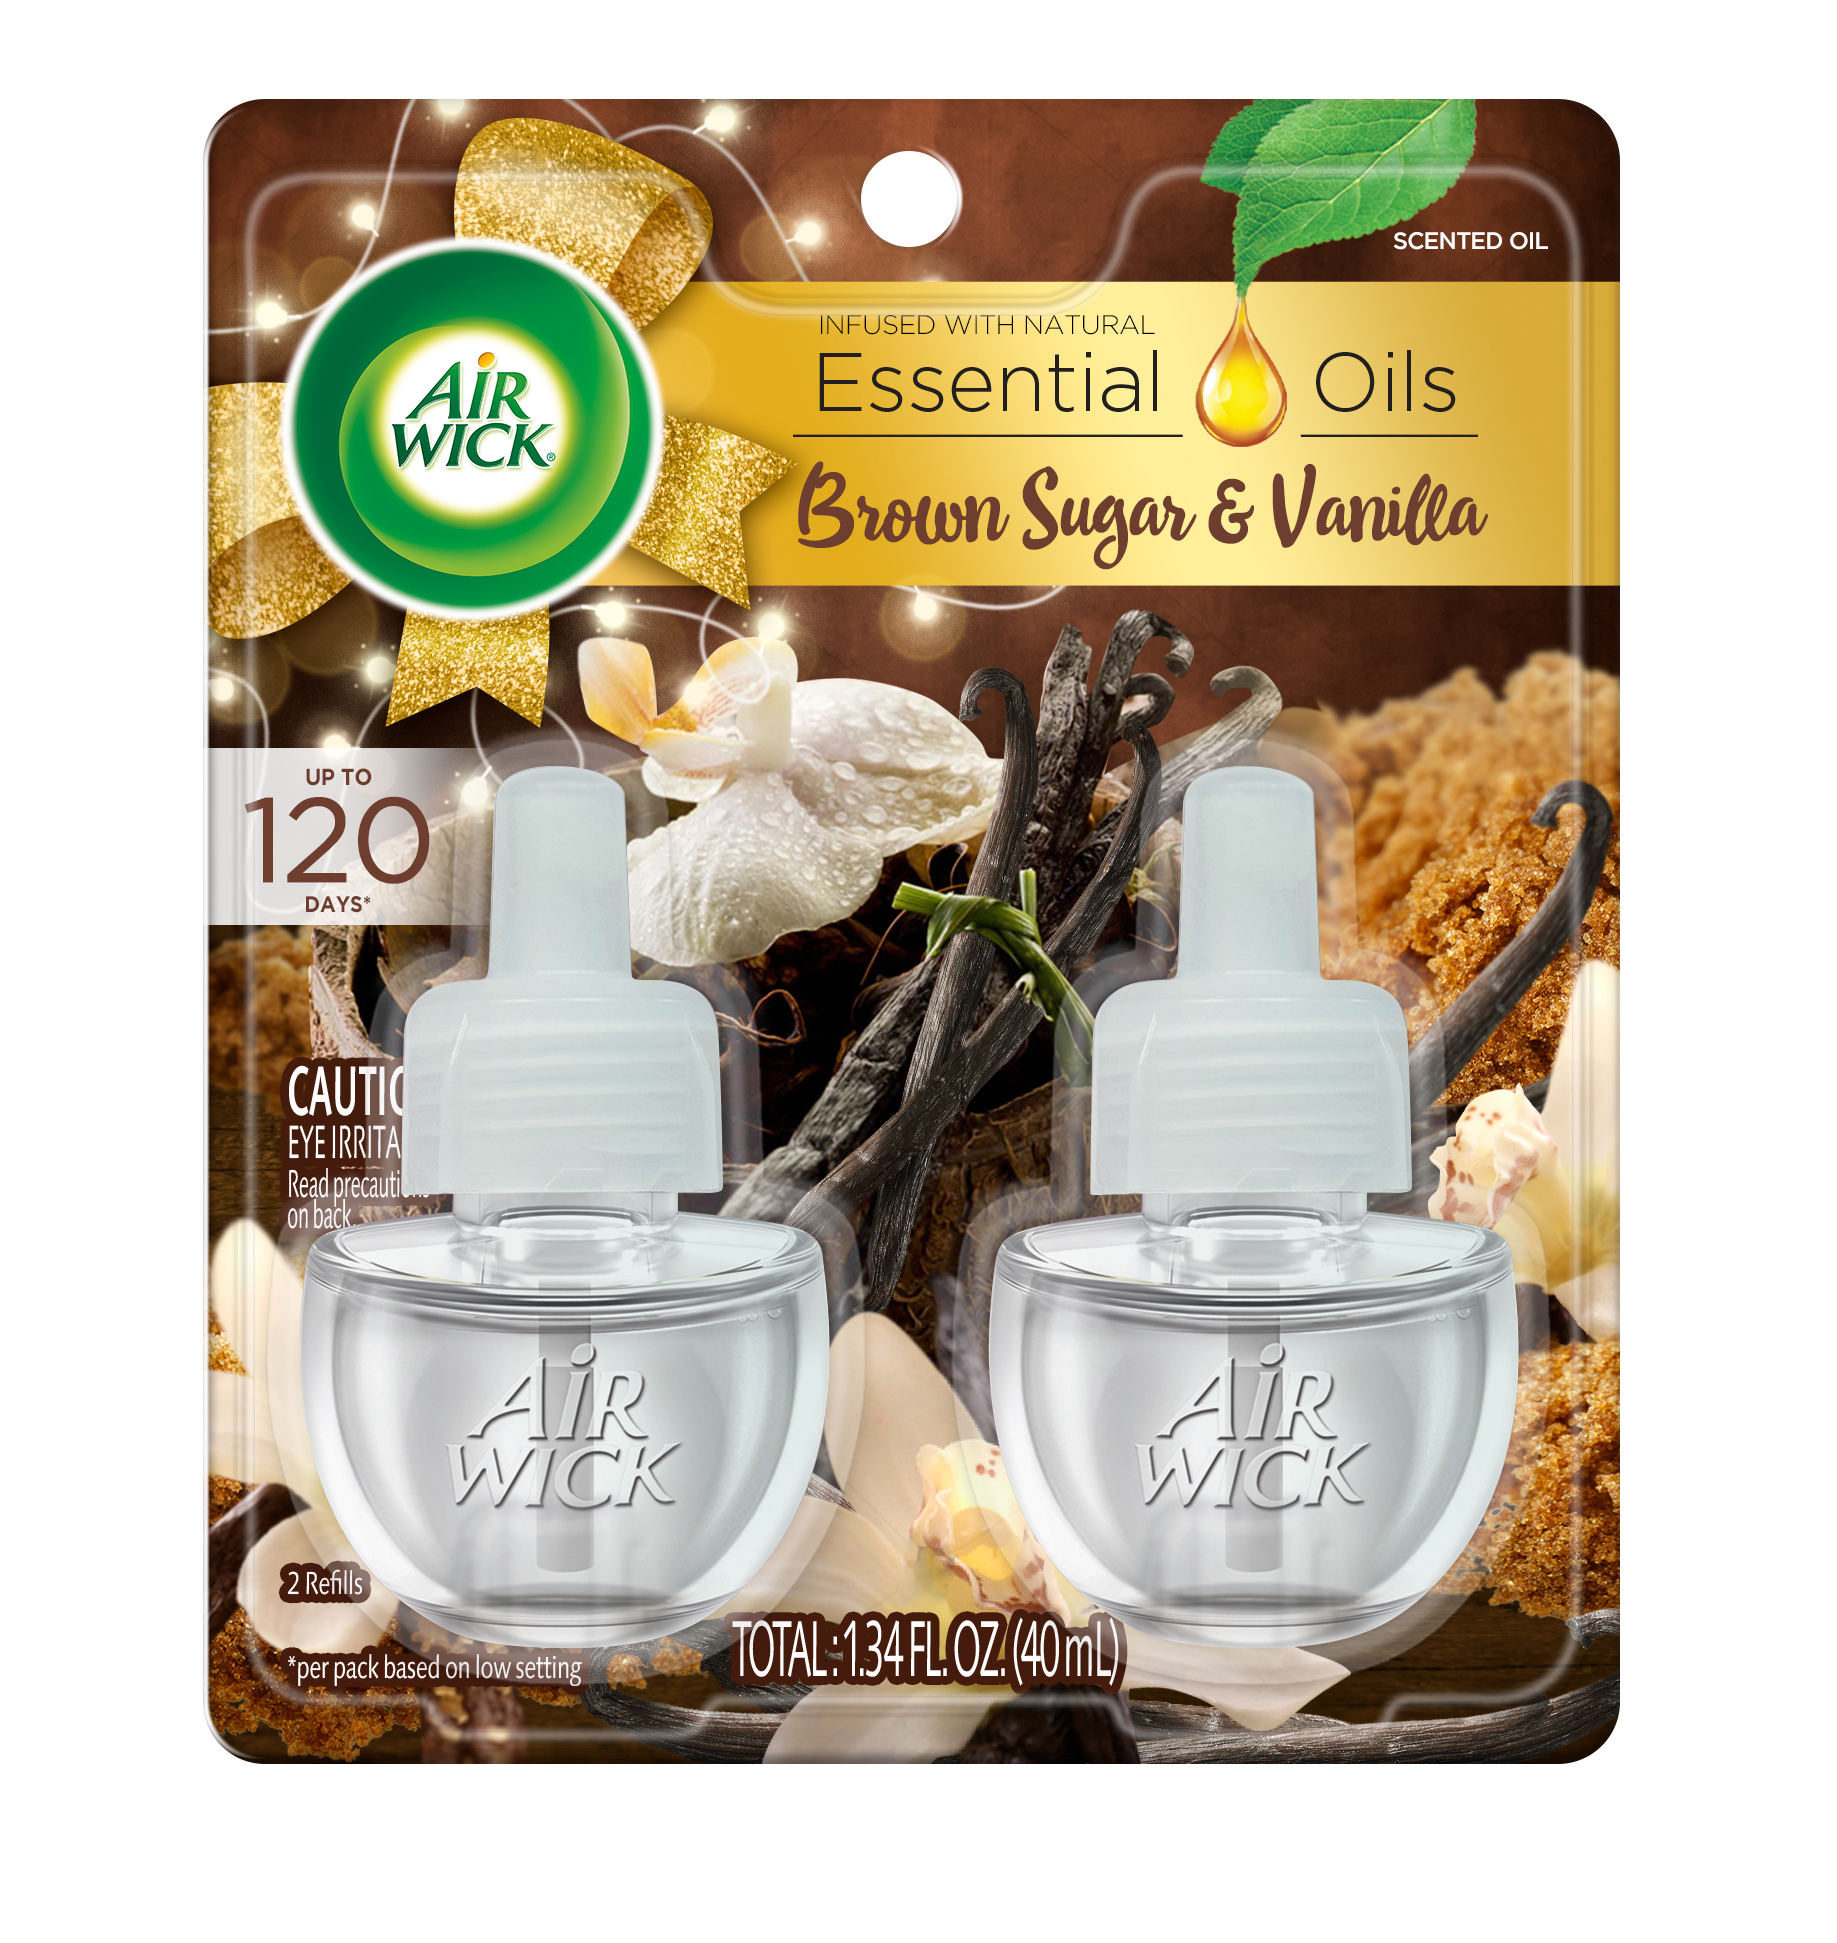 AIR WICK® Scented Oils - Brown Sugar & Vanilla